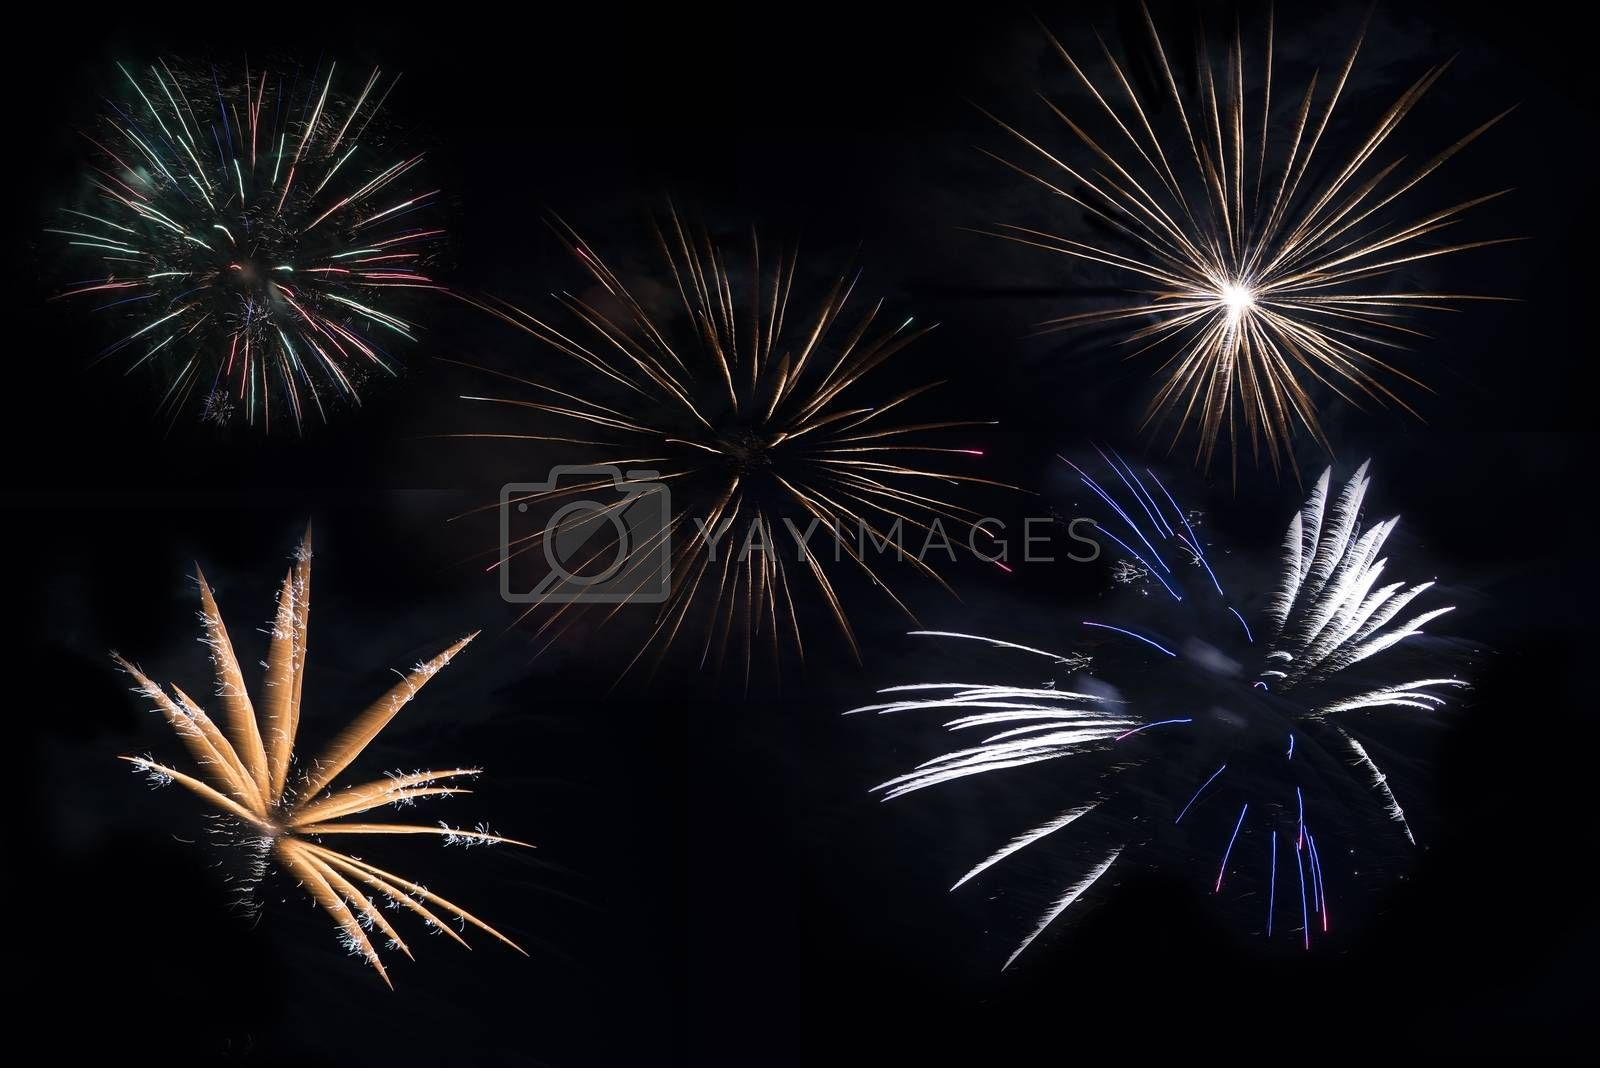 Separated Fireworks Blasts on Solid Black. Five Firework Explosions to Choose From.